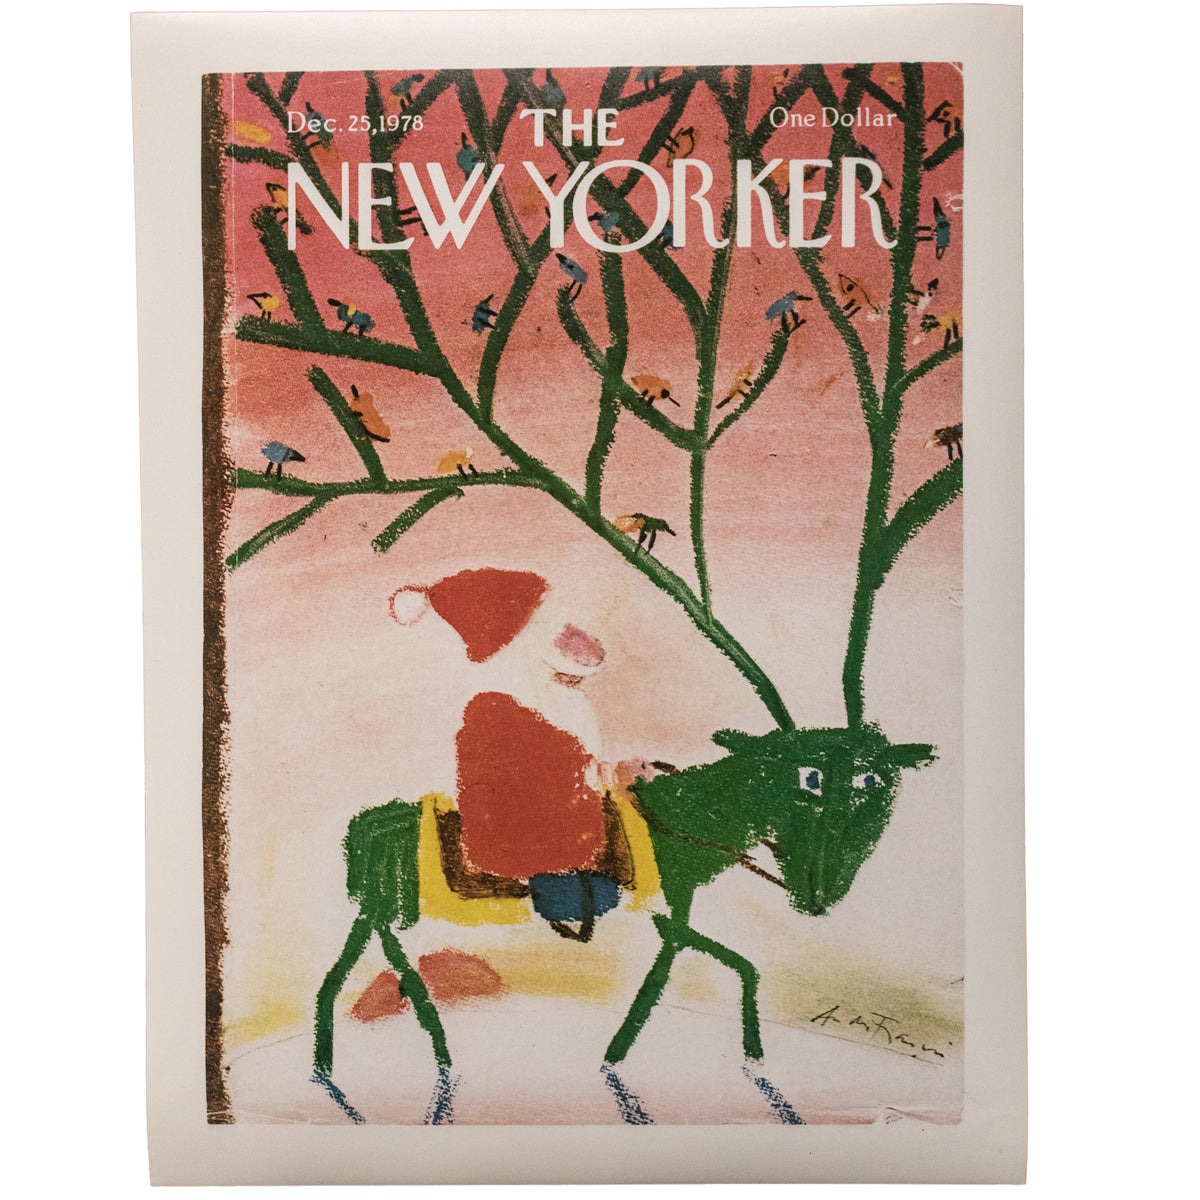 The New Yorker Xmas Cover Print December 1978 | The Architectural Forum